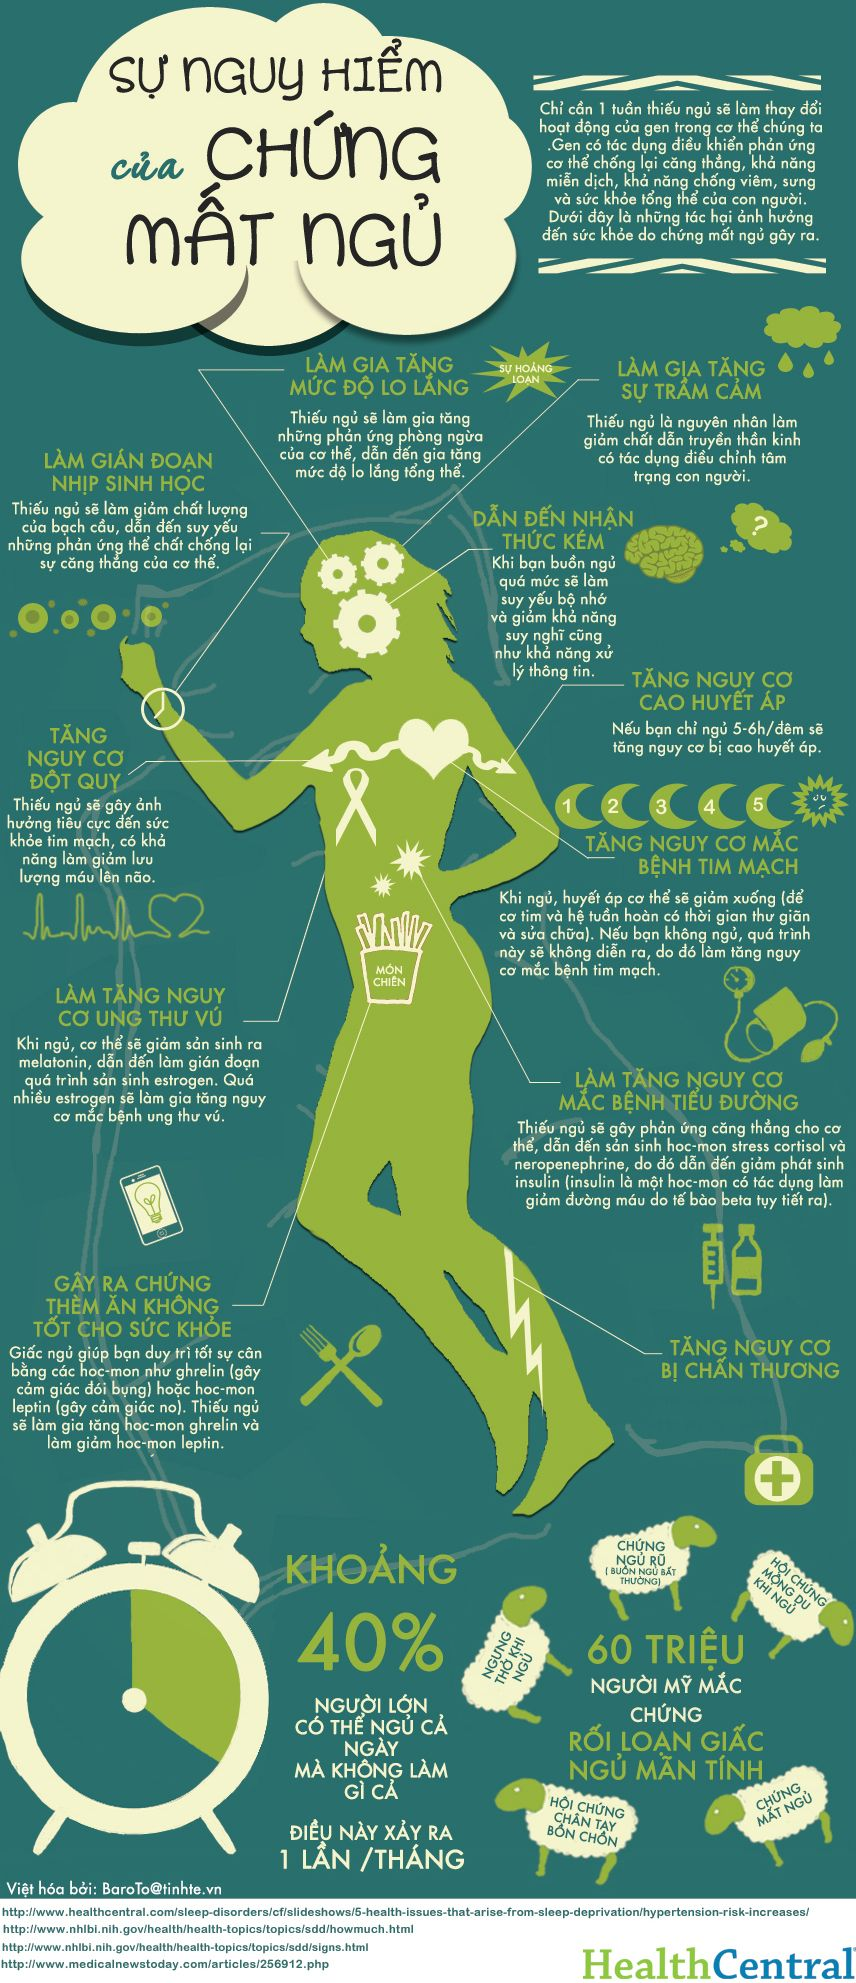 Nguy hiểm chứng mất ngủ ▻ Infographic BLOG http://infographic24h.blogspot.